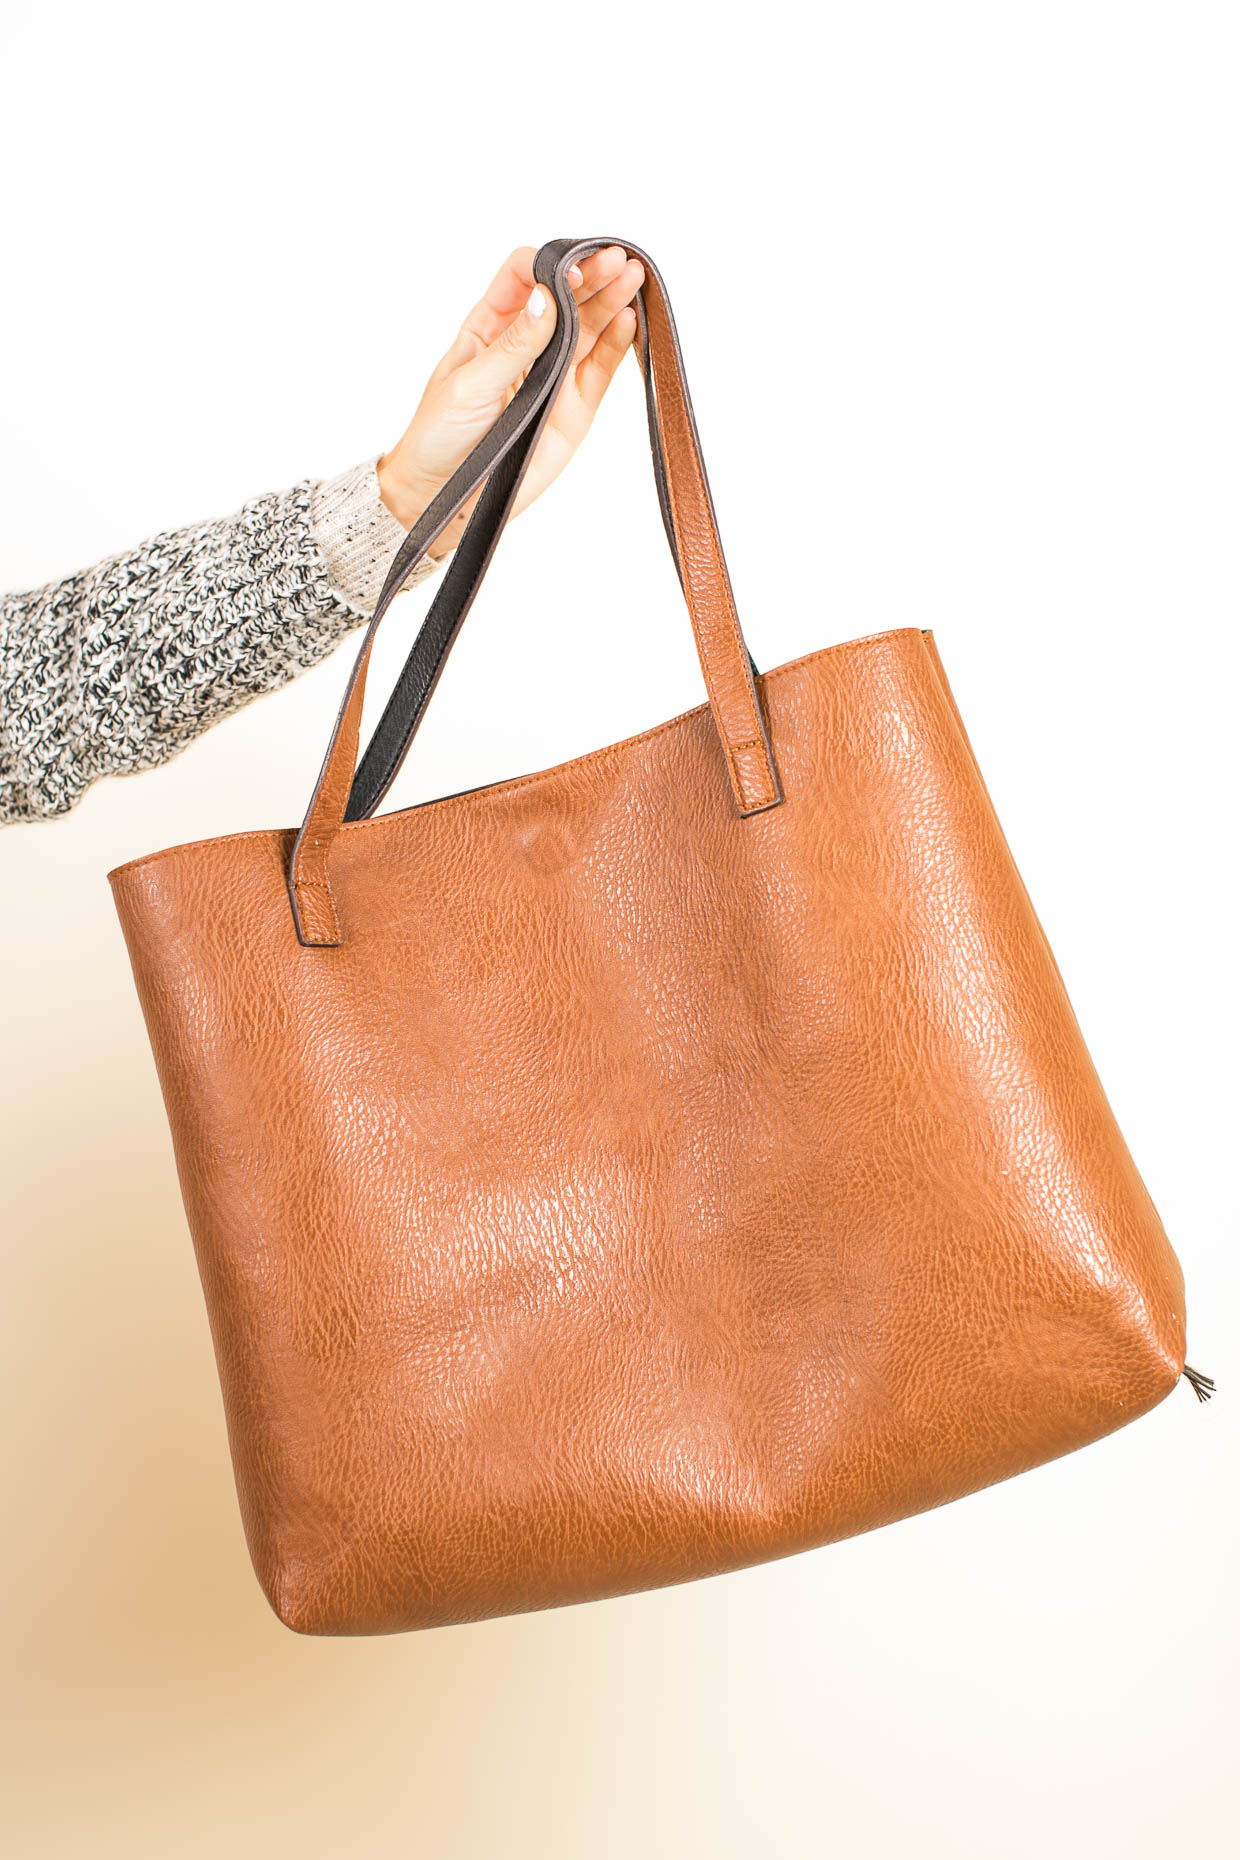 Fashion blogger The Darling Detail wears Street Level Reversible Faux Leather Tote